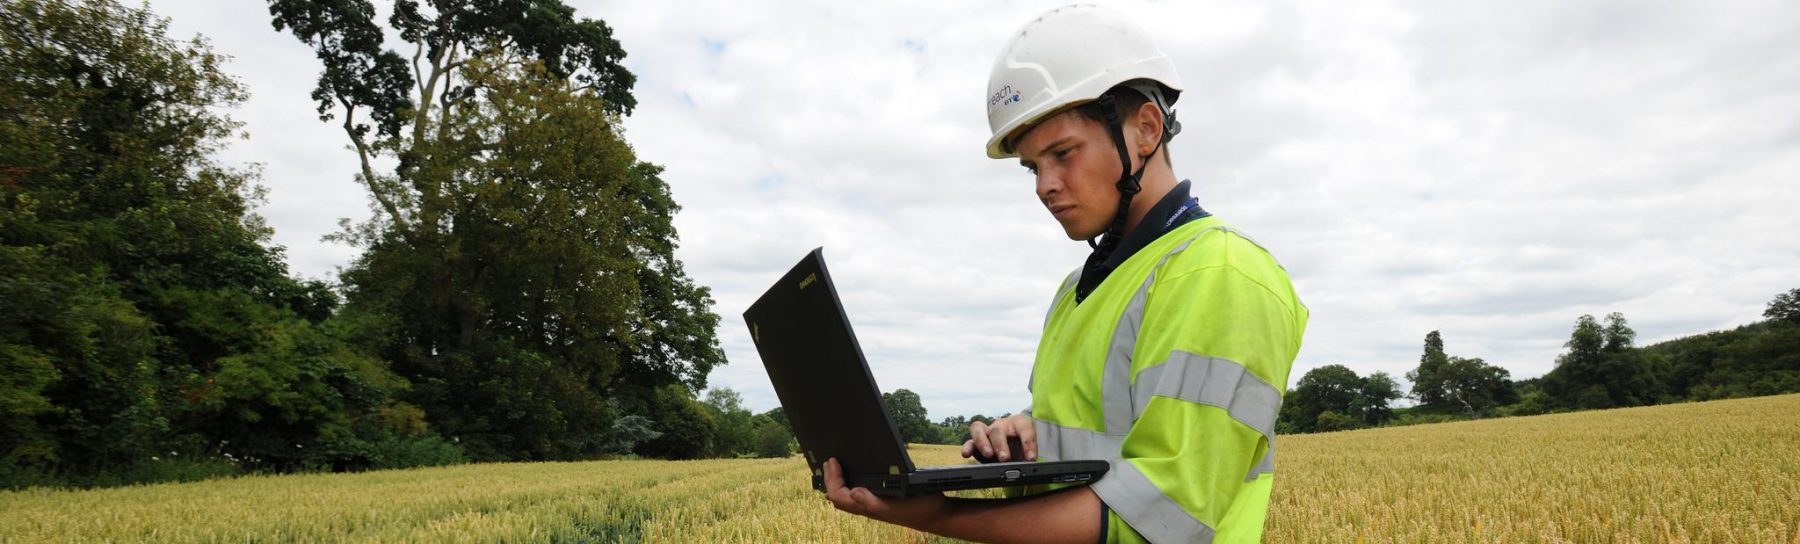 BT OpenReach engineer in a field